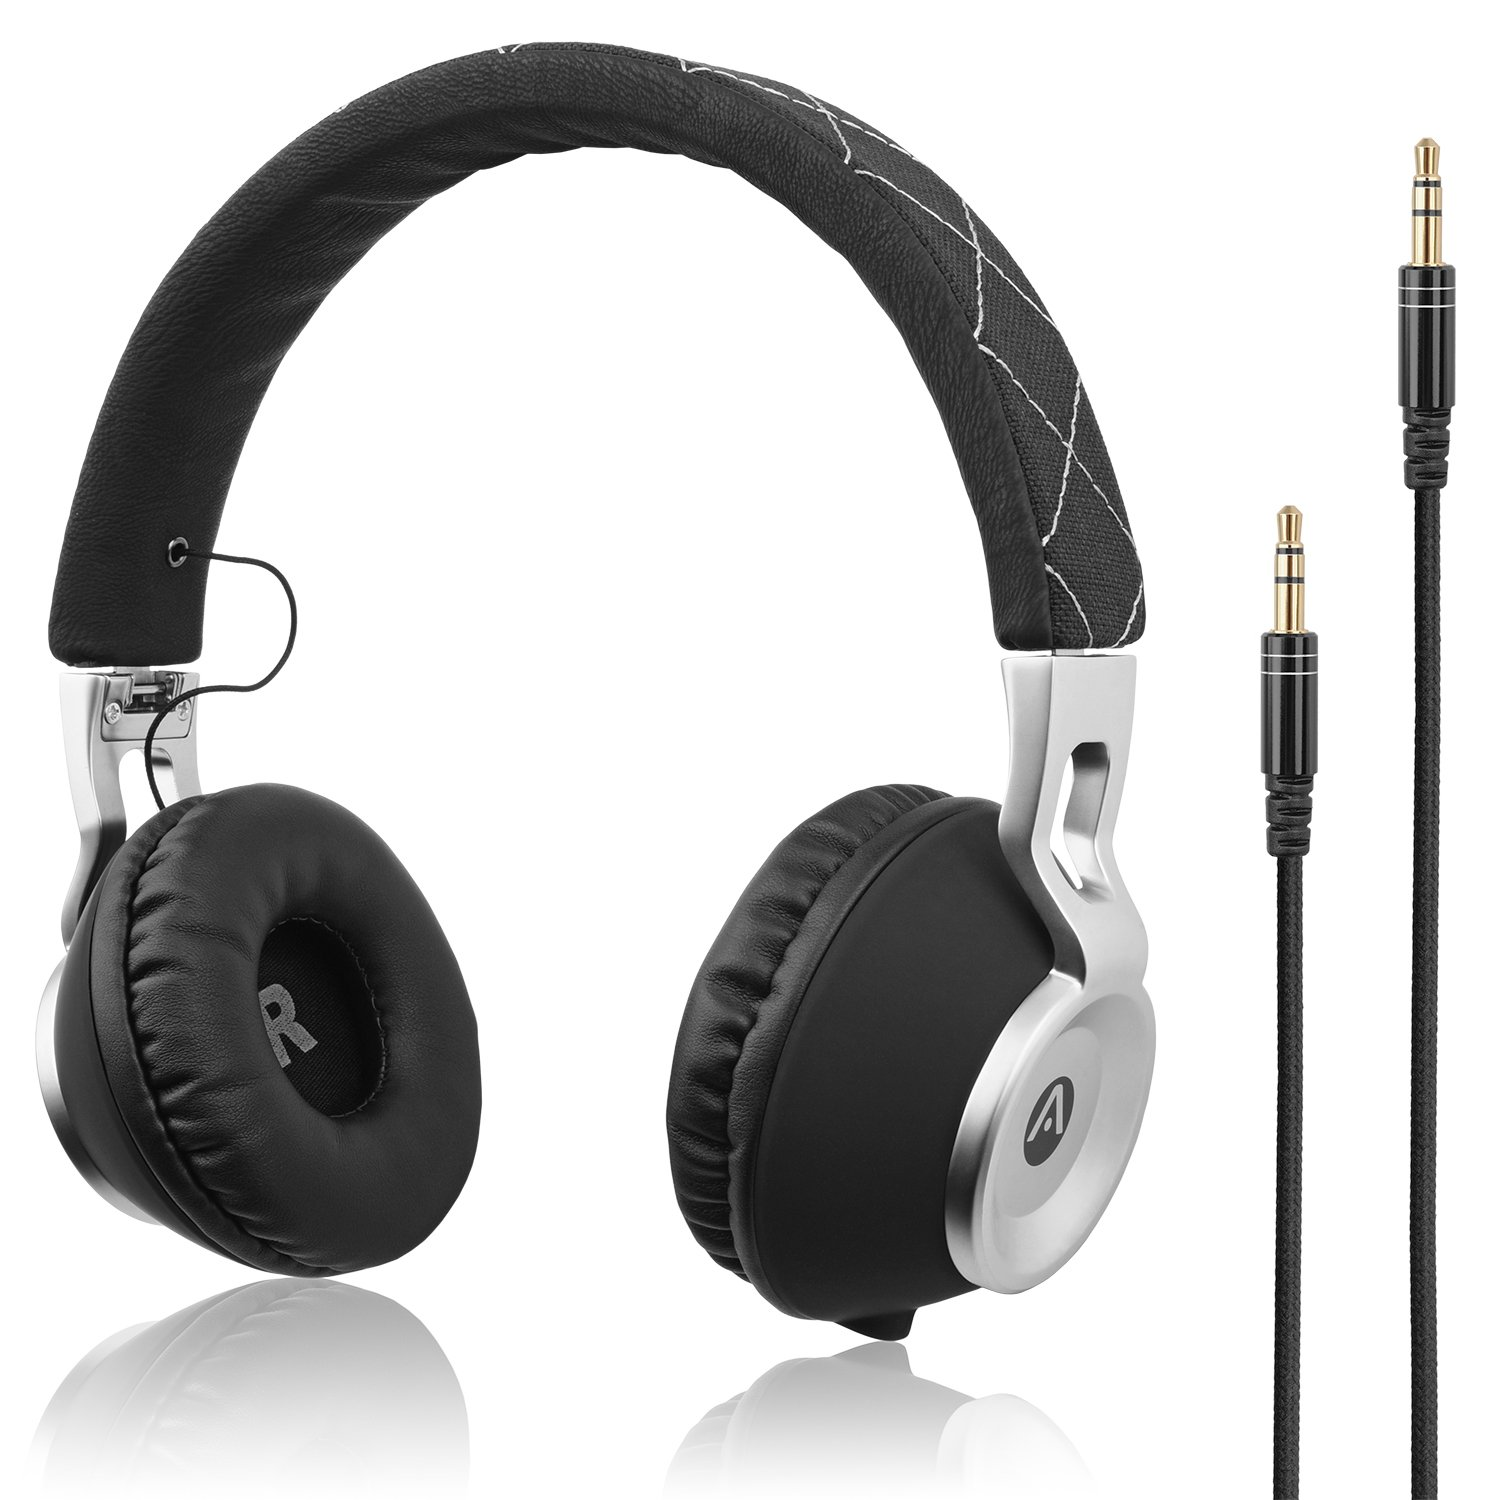 Audiomate High Bass Wired Over-Ear Headphones | Stylish Foldable and Portable Headset with Drawstring Bag | Noise-Isolating Earphones for Smartphone, PC, Tablet, TV, Gaming & More (Black/Silver)